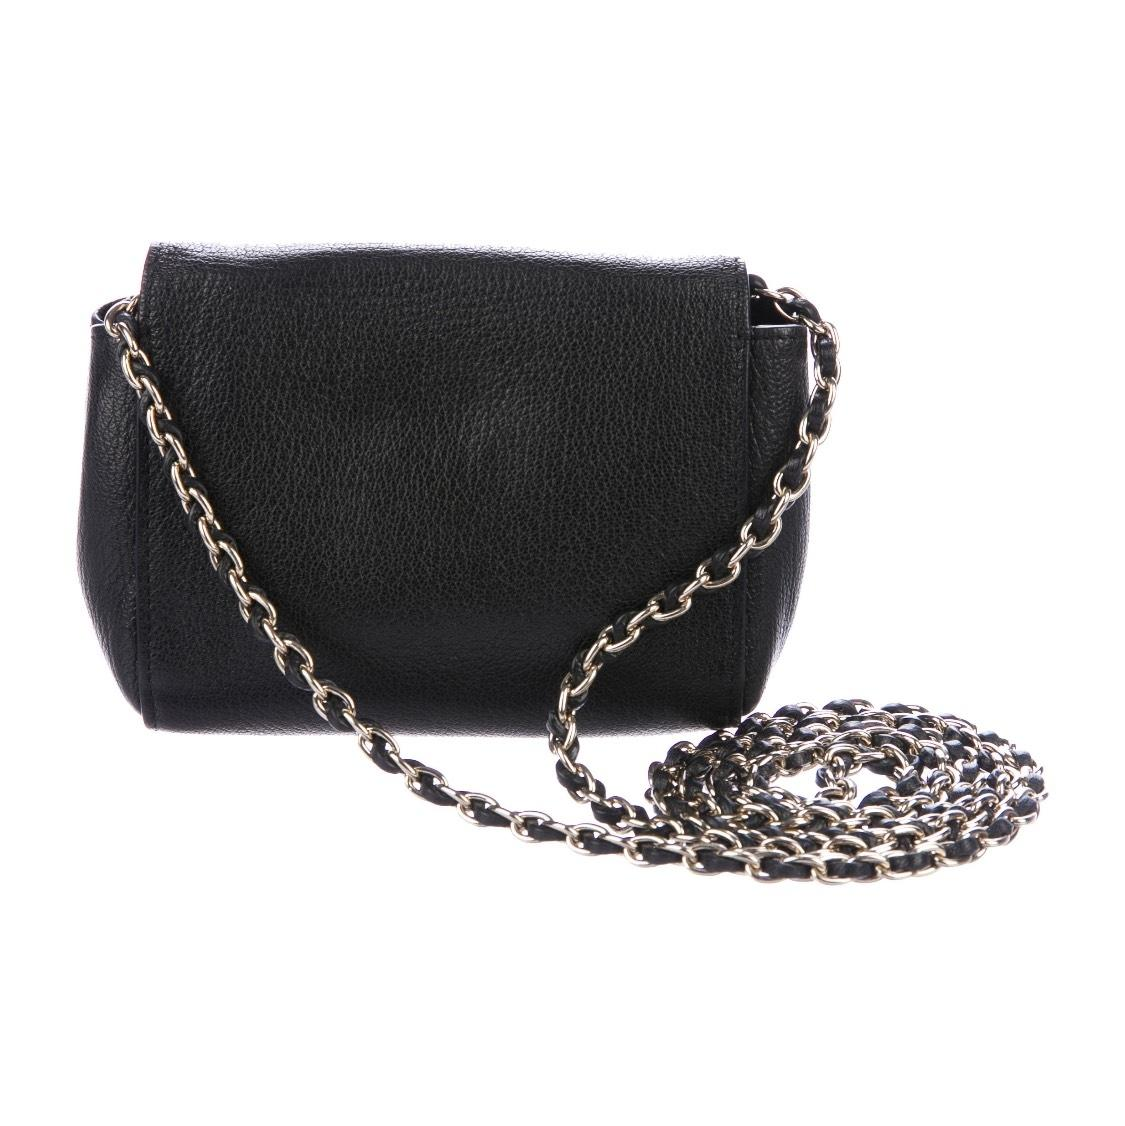 ... new zealand mulberry mini lily black leather cross body bag tradesy  135a7 5928d 4d0a86ab437c9